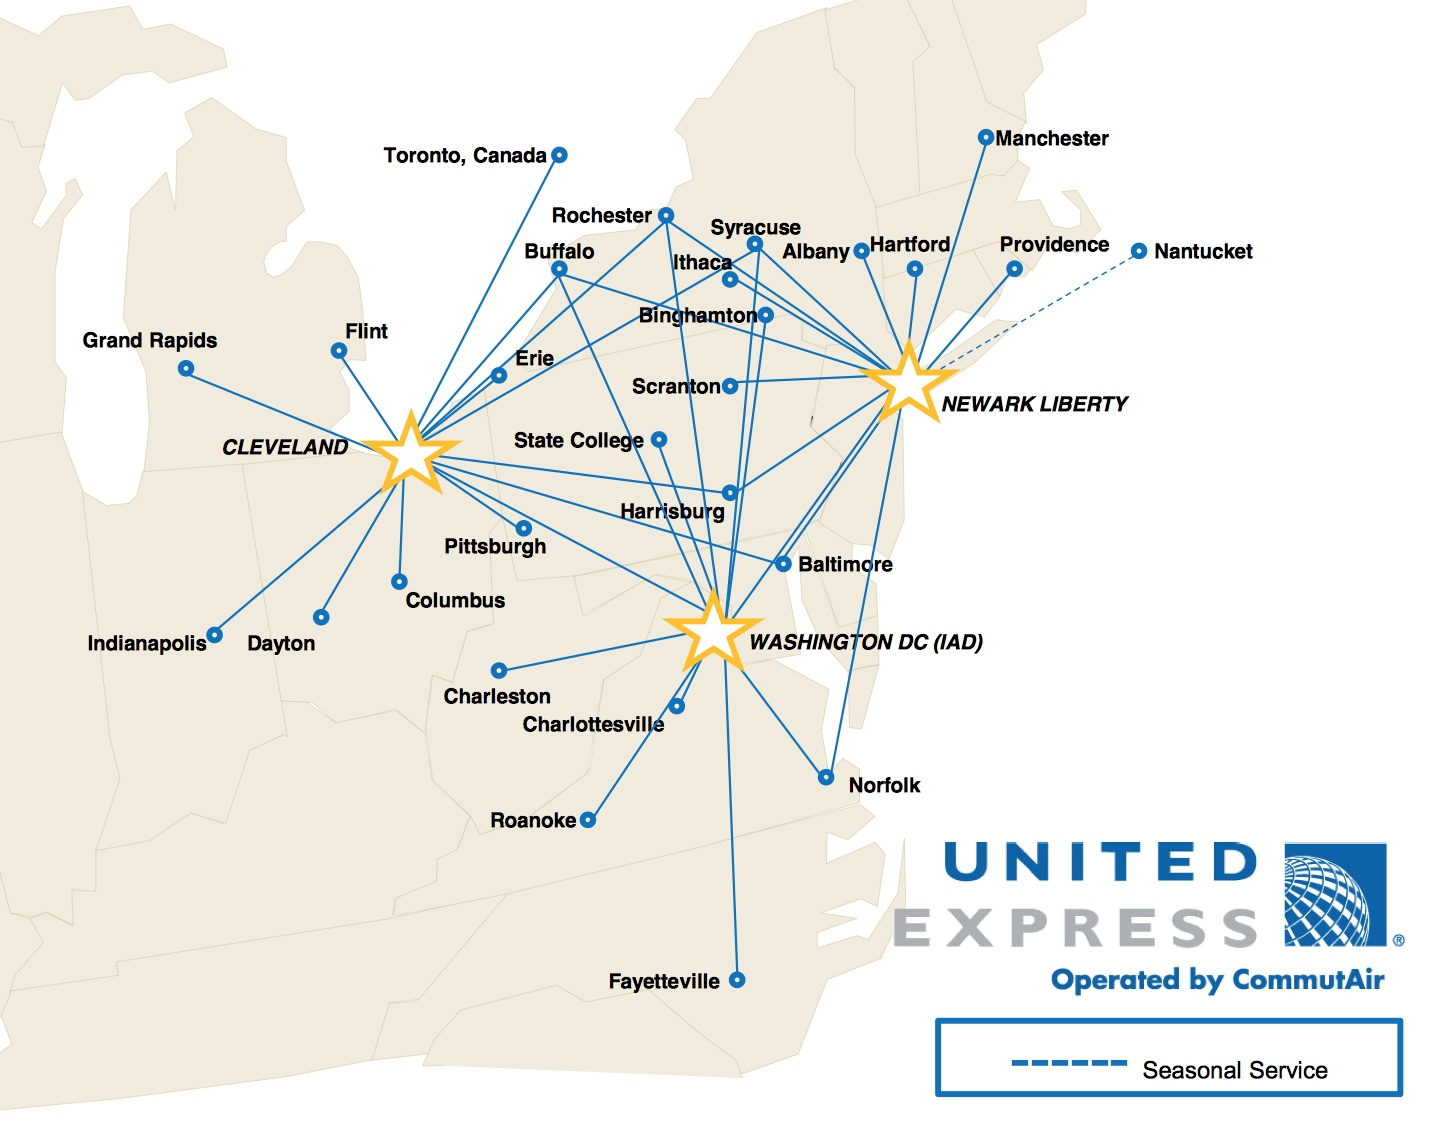 From Turboprops to Turbofans: Inside CommutAir's Transition ... on united airlines flight routes 2011, lufthansa airlines route map, united airlines route structure, british airways route map, spirit airlines route map, skywest airlines route map, asia pacific airlines route map, delta caribbean route map, american airlines route map, cayman airways route map, northwest airlines route map, latin america and caribbean map, aa route map, united international route map, delta air lines route map, jetblue caribbean route map, allegiant airlines route map, continental airlines route map, united route map europe, united airlines international routes,